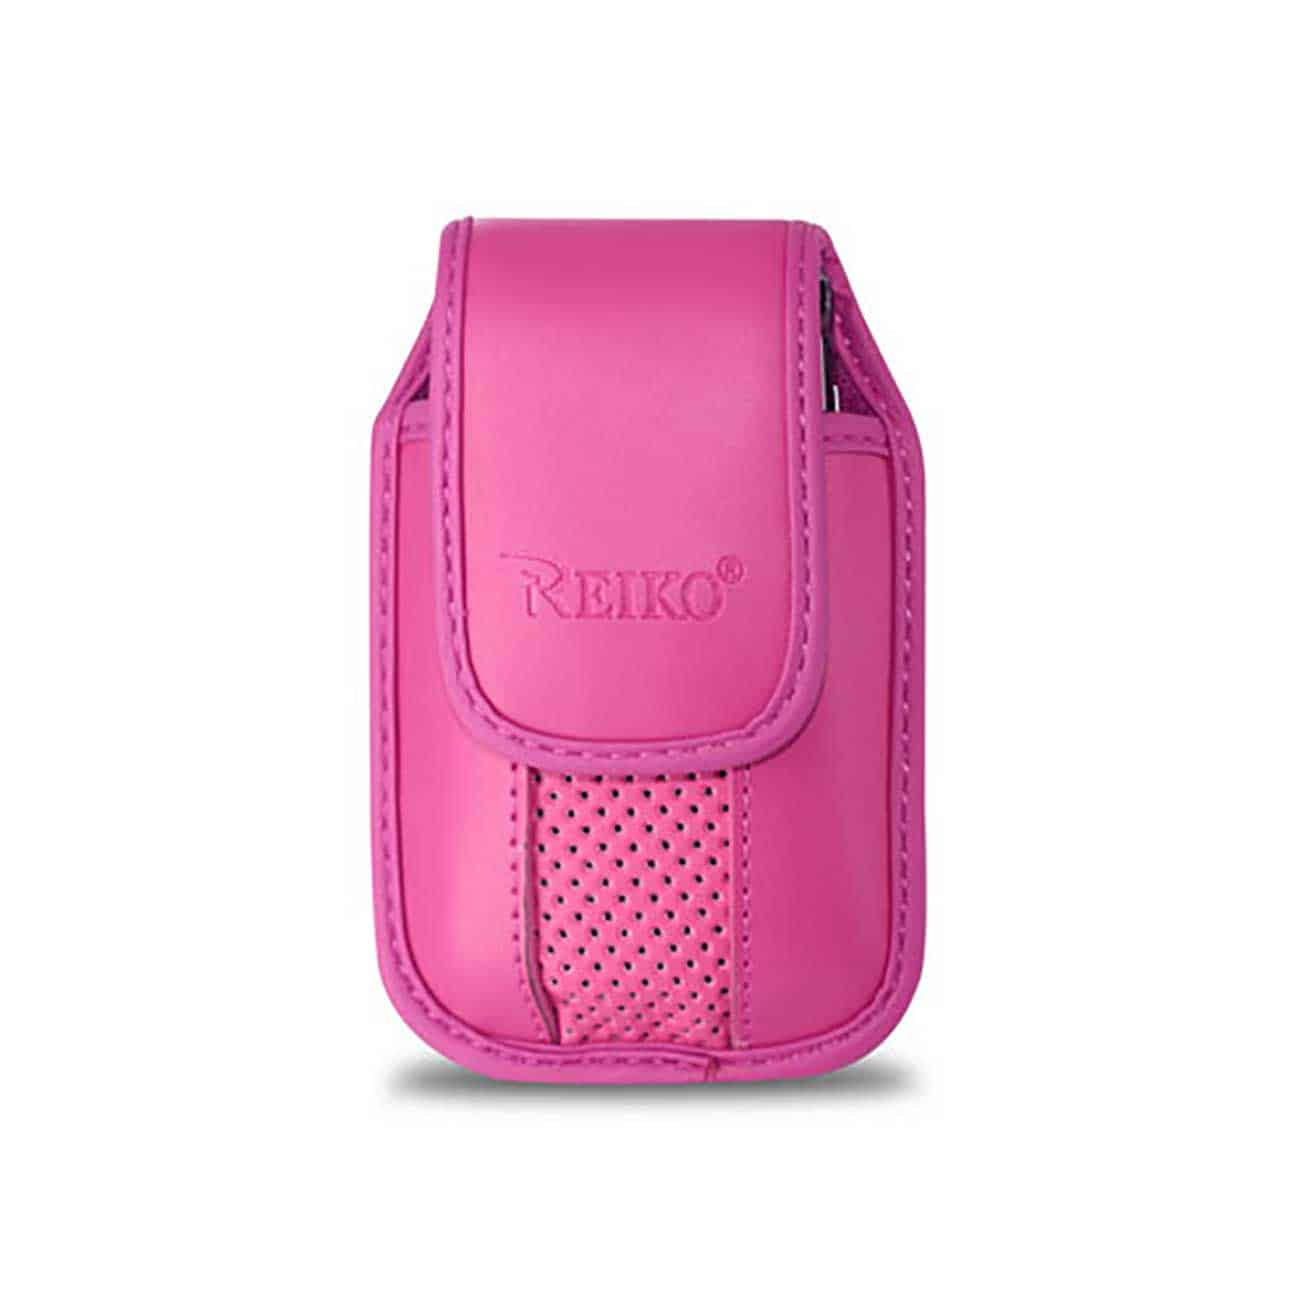 VERTICAL POUCH VP11A MOTOLORA V3 HOT PINK 4X0.5X2.1 INCHES